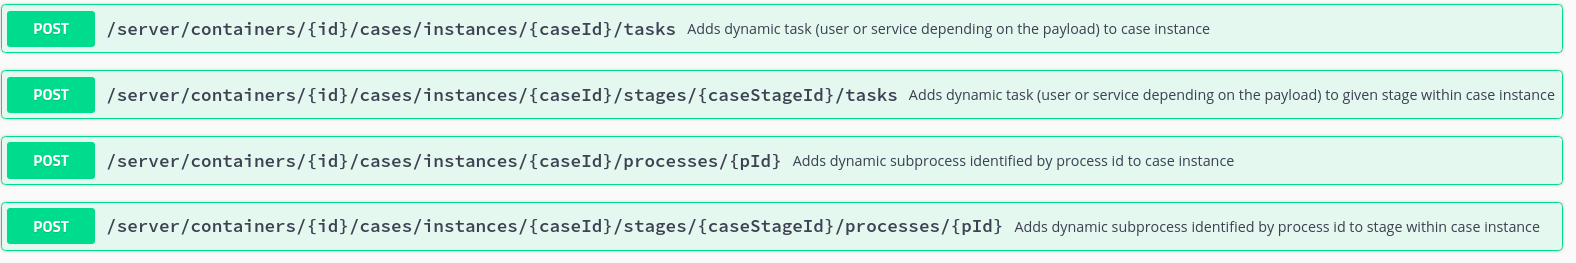 Chapter 8  Adding dynamic tasks and processes to a case